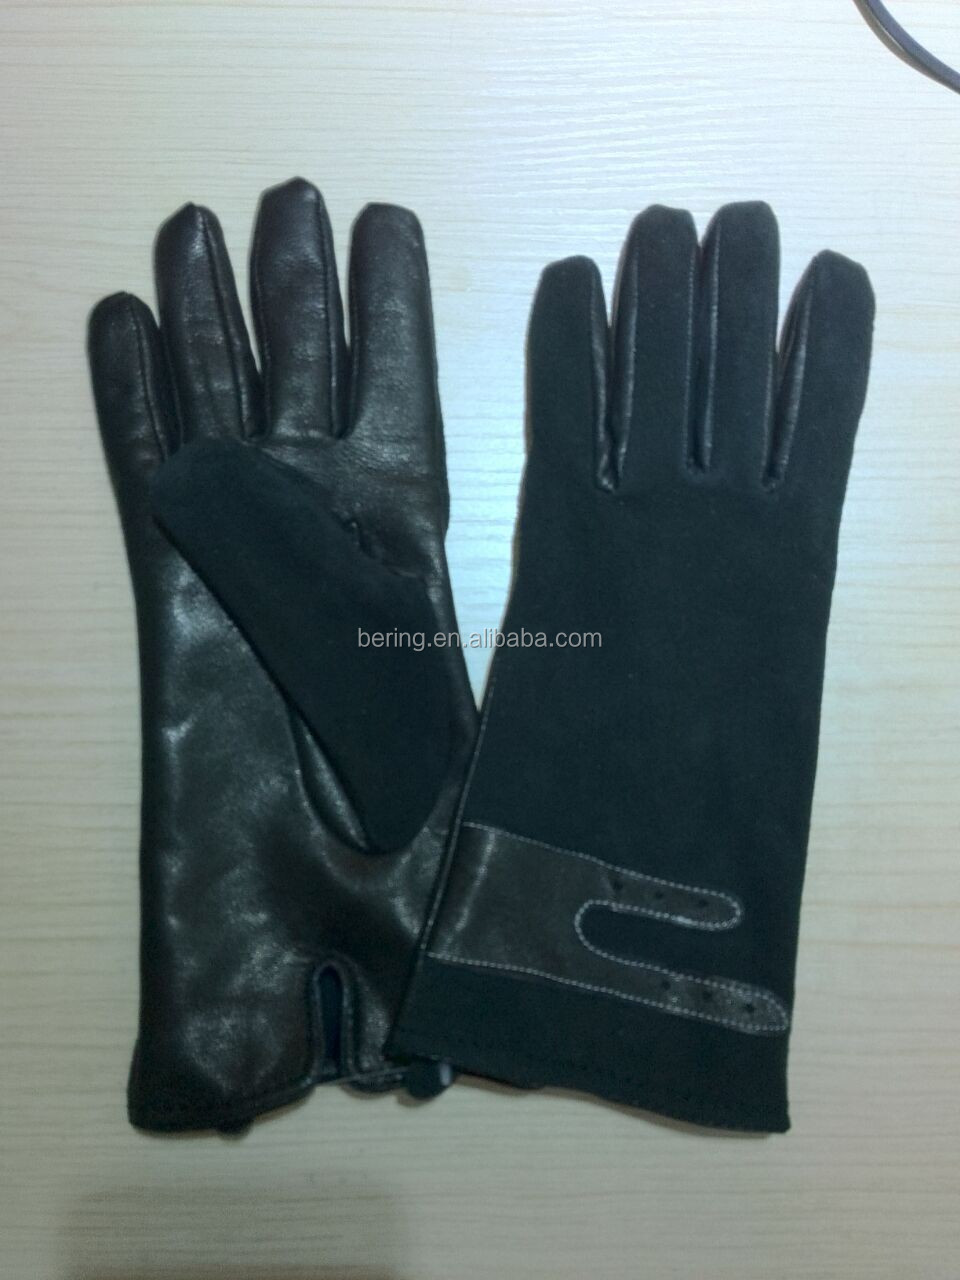 Ladies leather horse riding gloves - Leather Horse Riding Gloves Warming Leather Horse Riding Gloves Warming Suppliers And Manufacturers At Alibaba Com